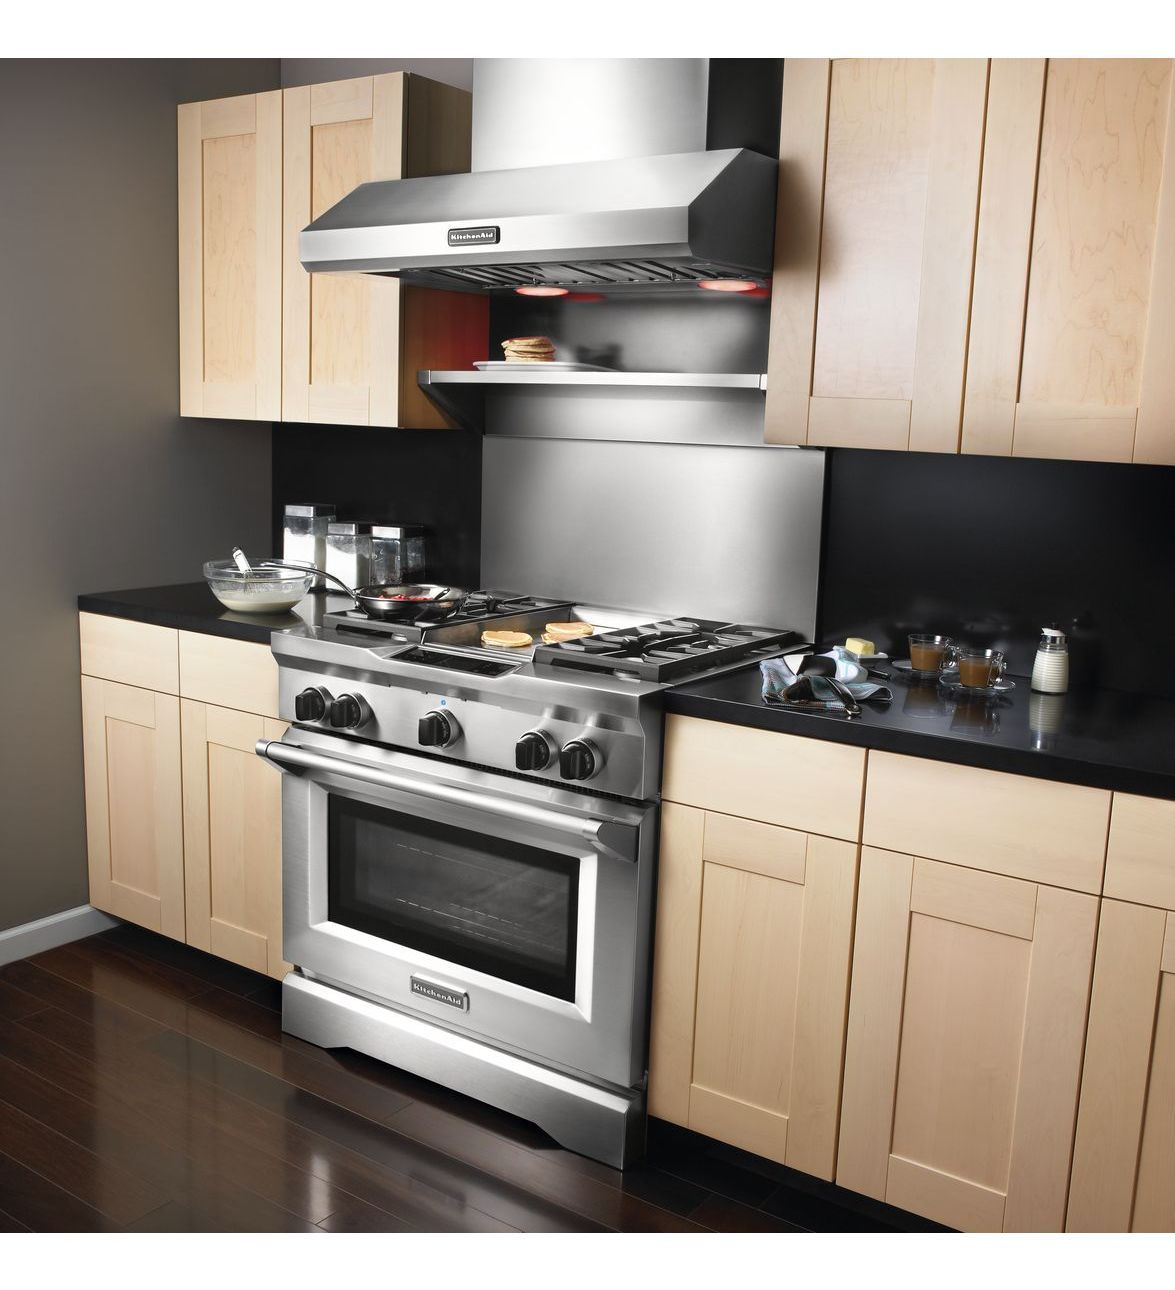 Great KITCHEN AID COMMERCIAL STYLE 36 INCH WITH BACKSPLASH, WARMING SHELF AND  COMMERCIAL STYLE VENT HOOD THIS IS THE SETUP WE ENDED UP ORDERING FOR  FARMHOUSE WE ...